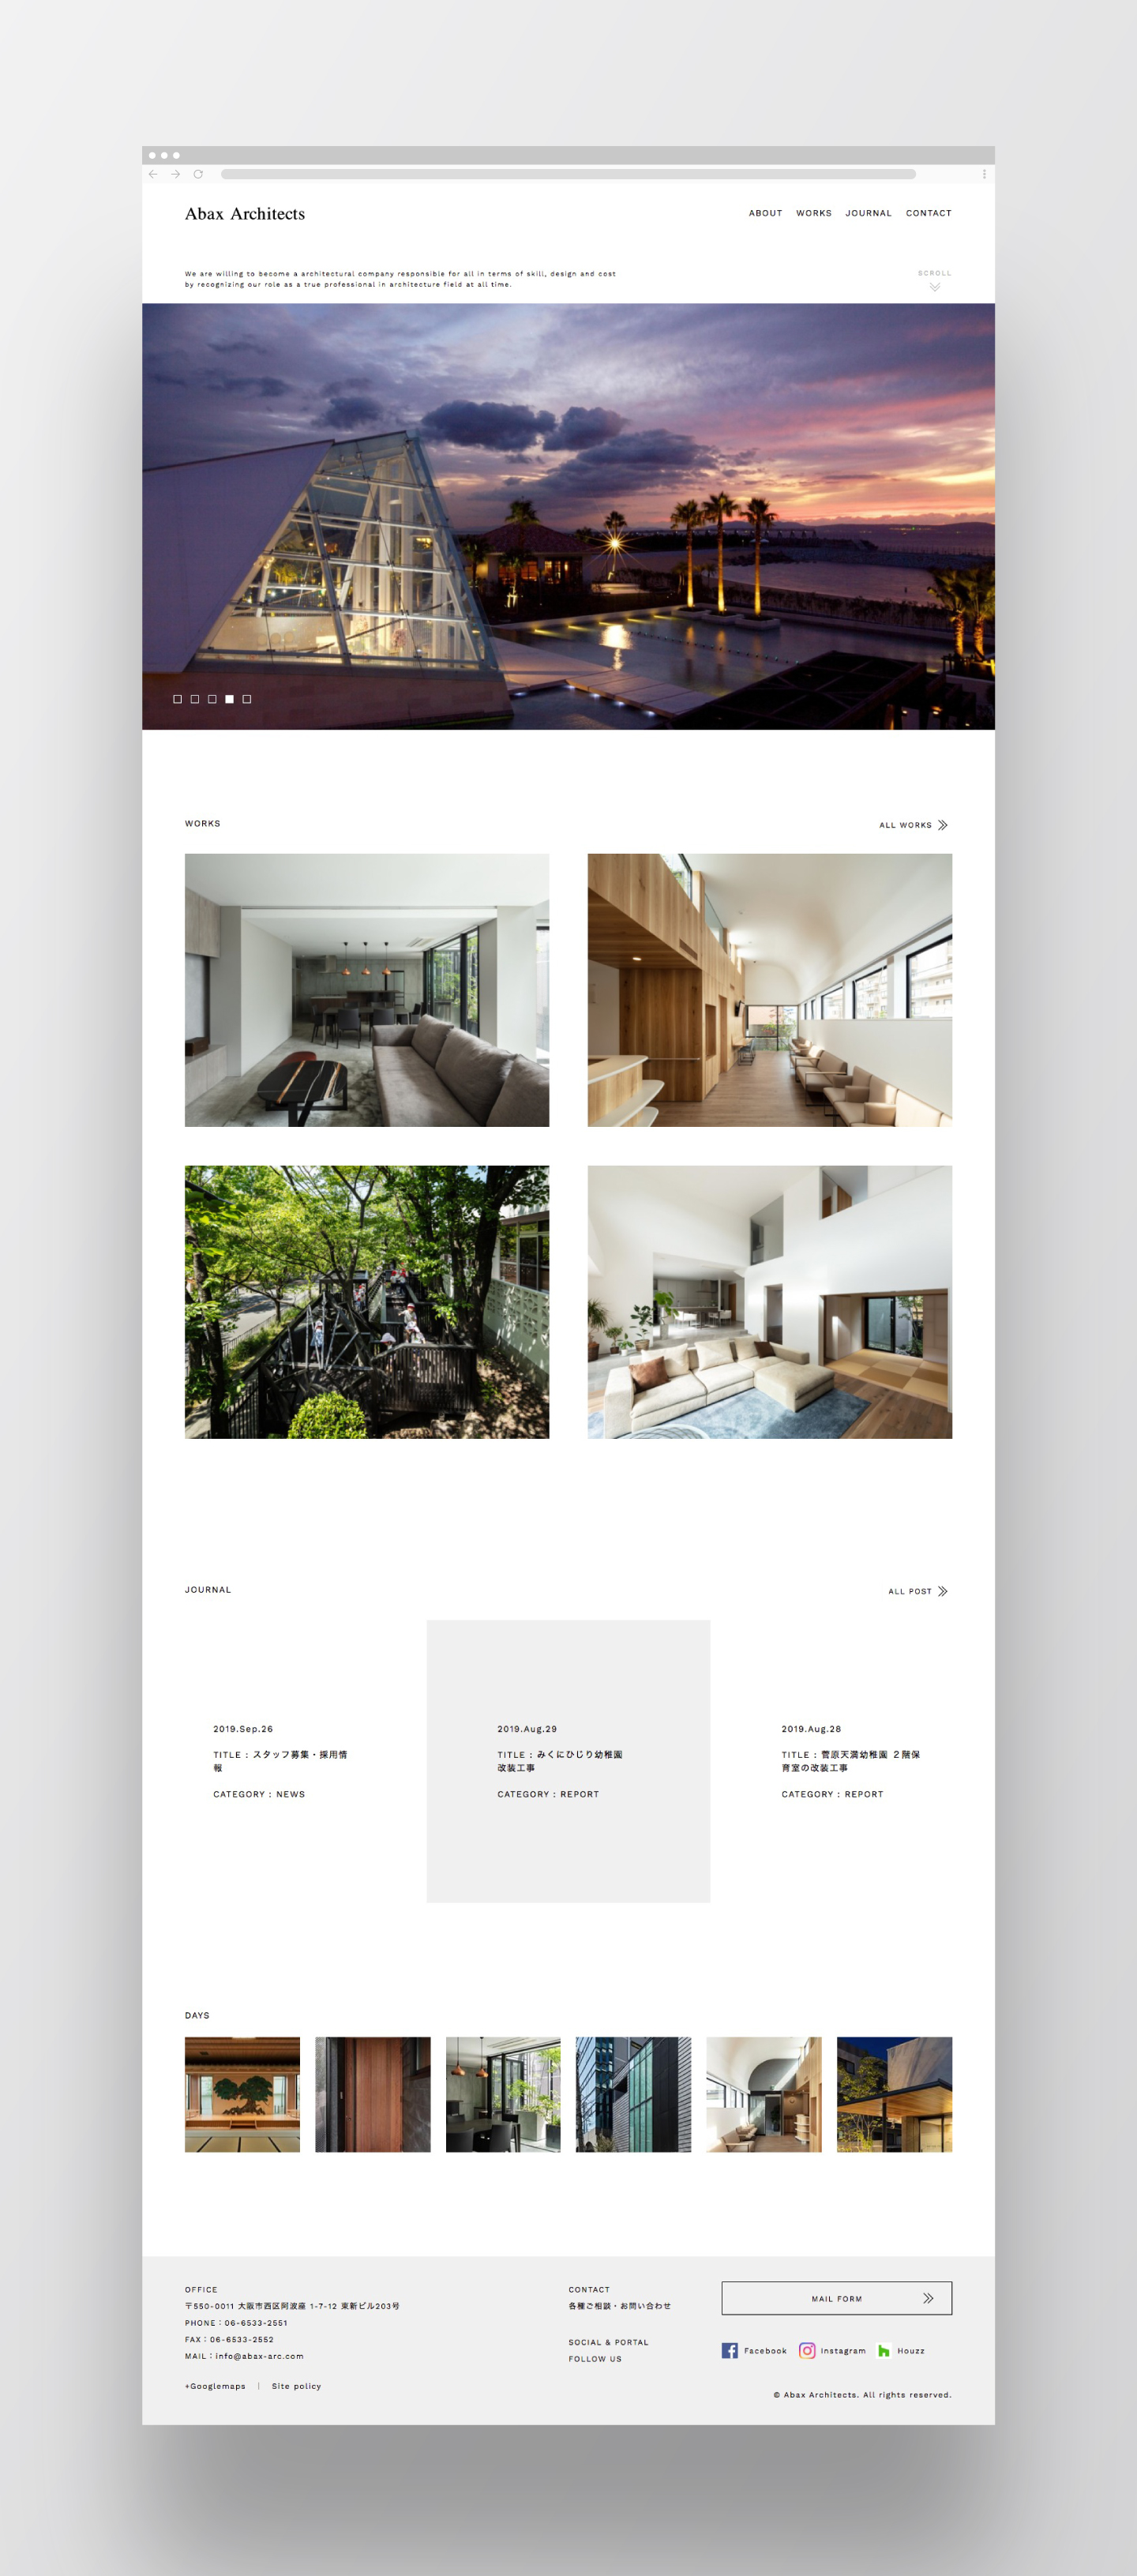 Abax Architects Web Design